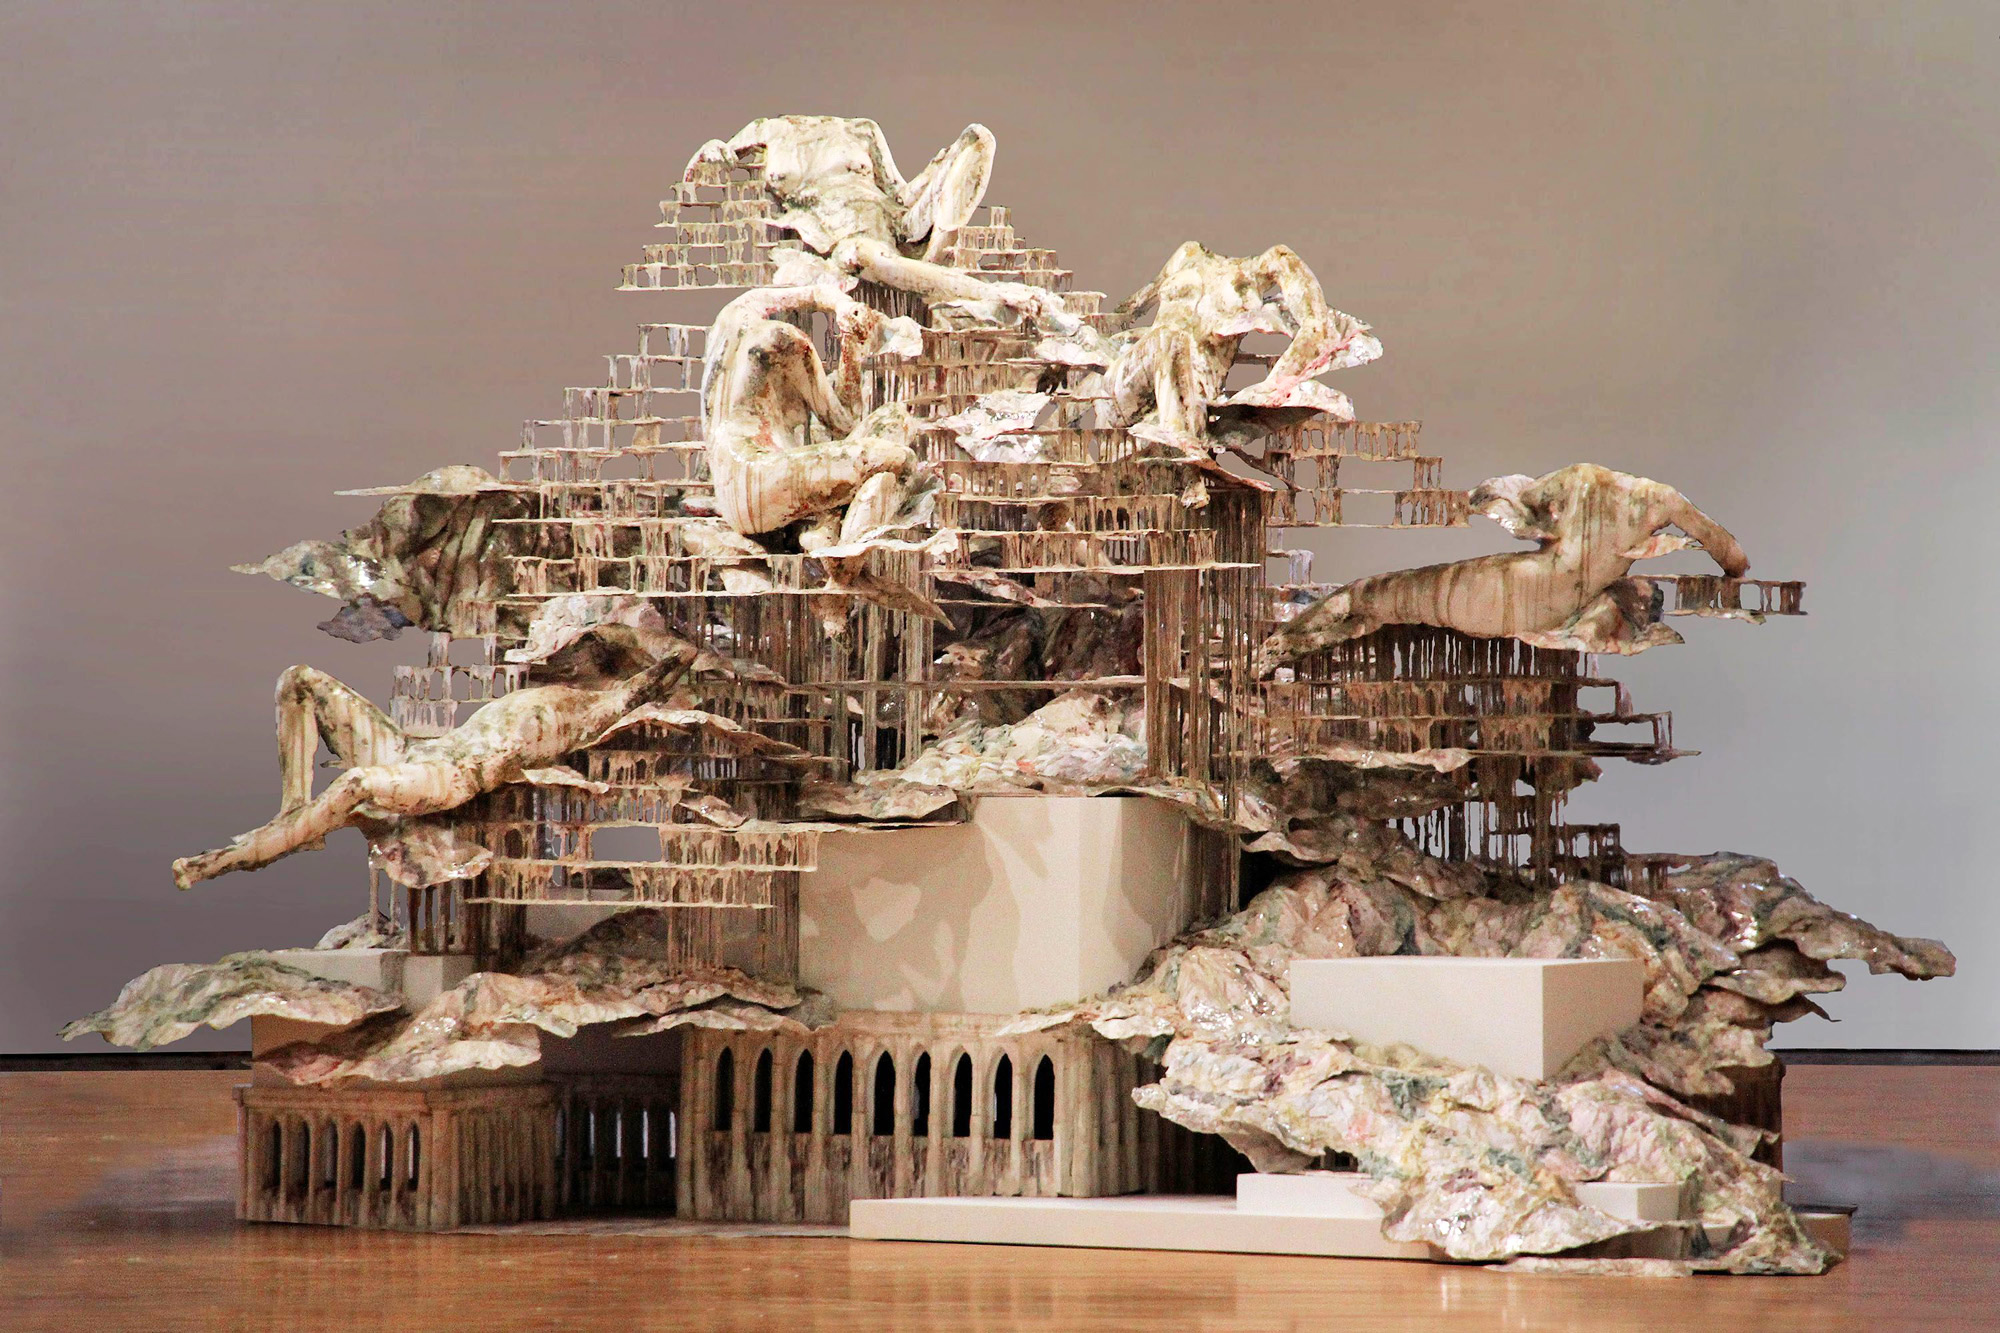 Ghostly Figures Occupy Sculptures of Architectural Ruin by Diana Al-Hadid | Colossal